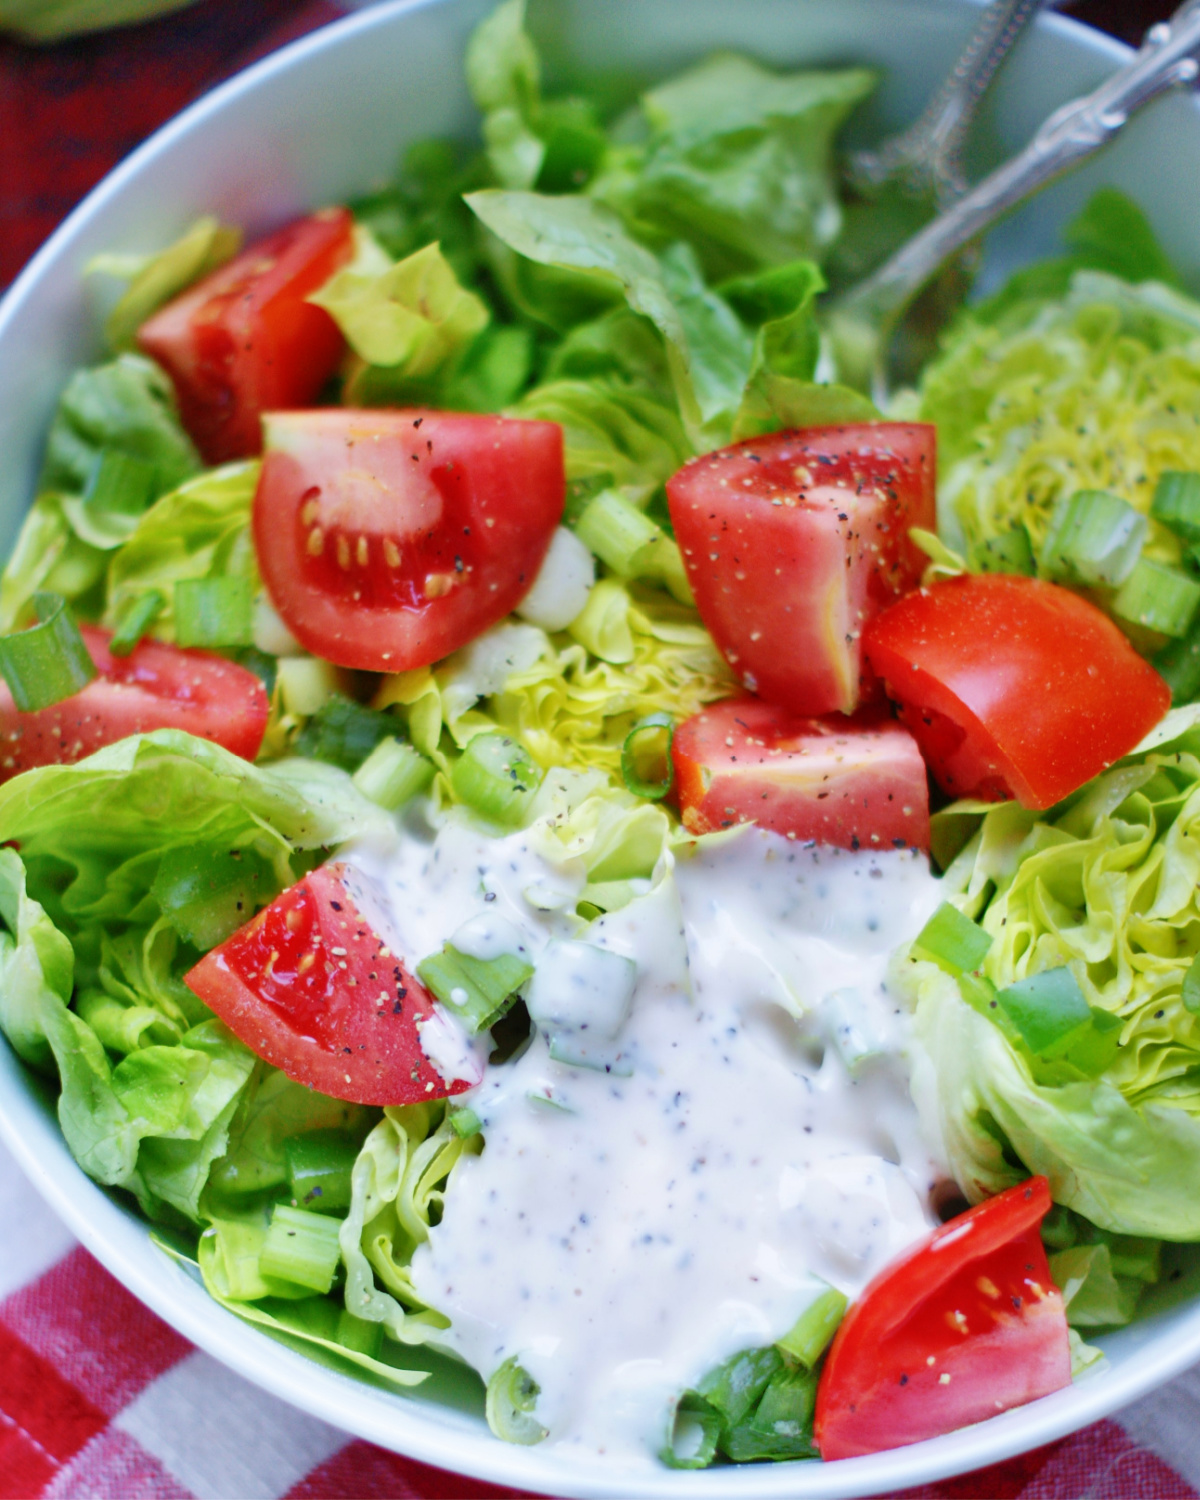 pouring mayo dressing on green salad